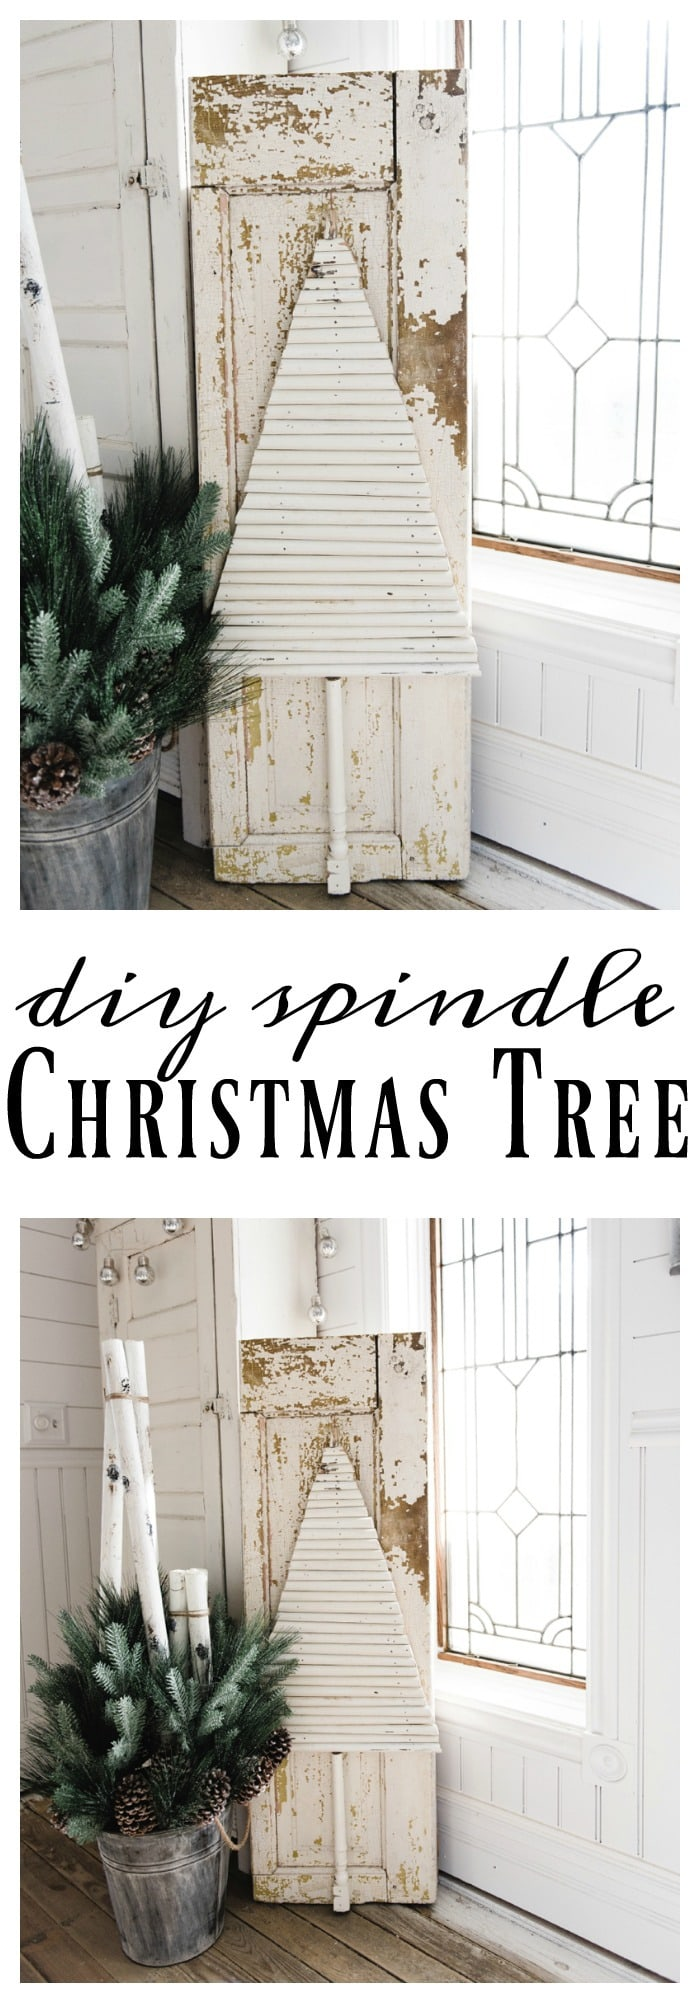 DIY chippy spindle Christmas tree - A super easy DIY farmhouse Christmas decor project. A must pin for farmhouse & cottage style Christmas inspiration!